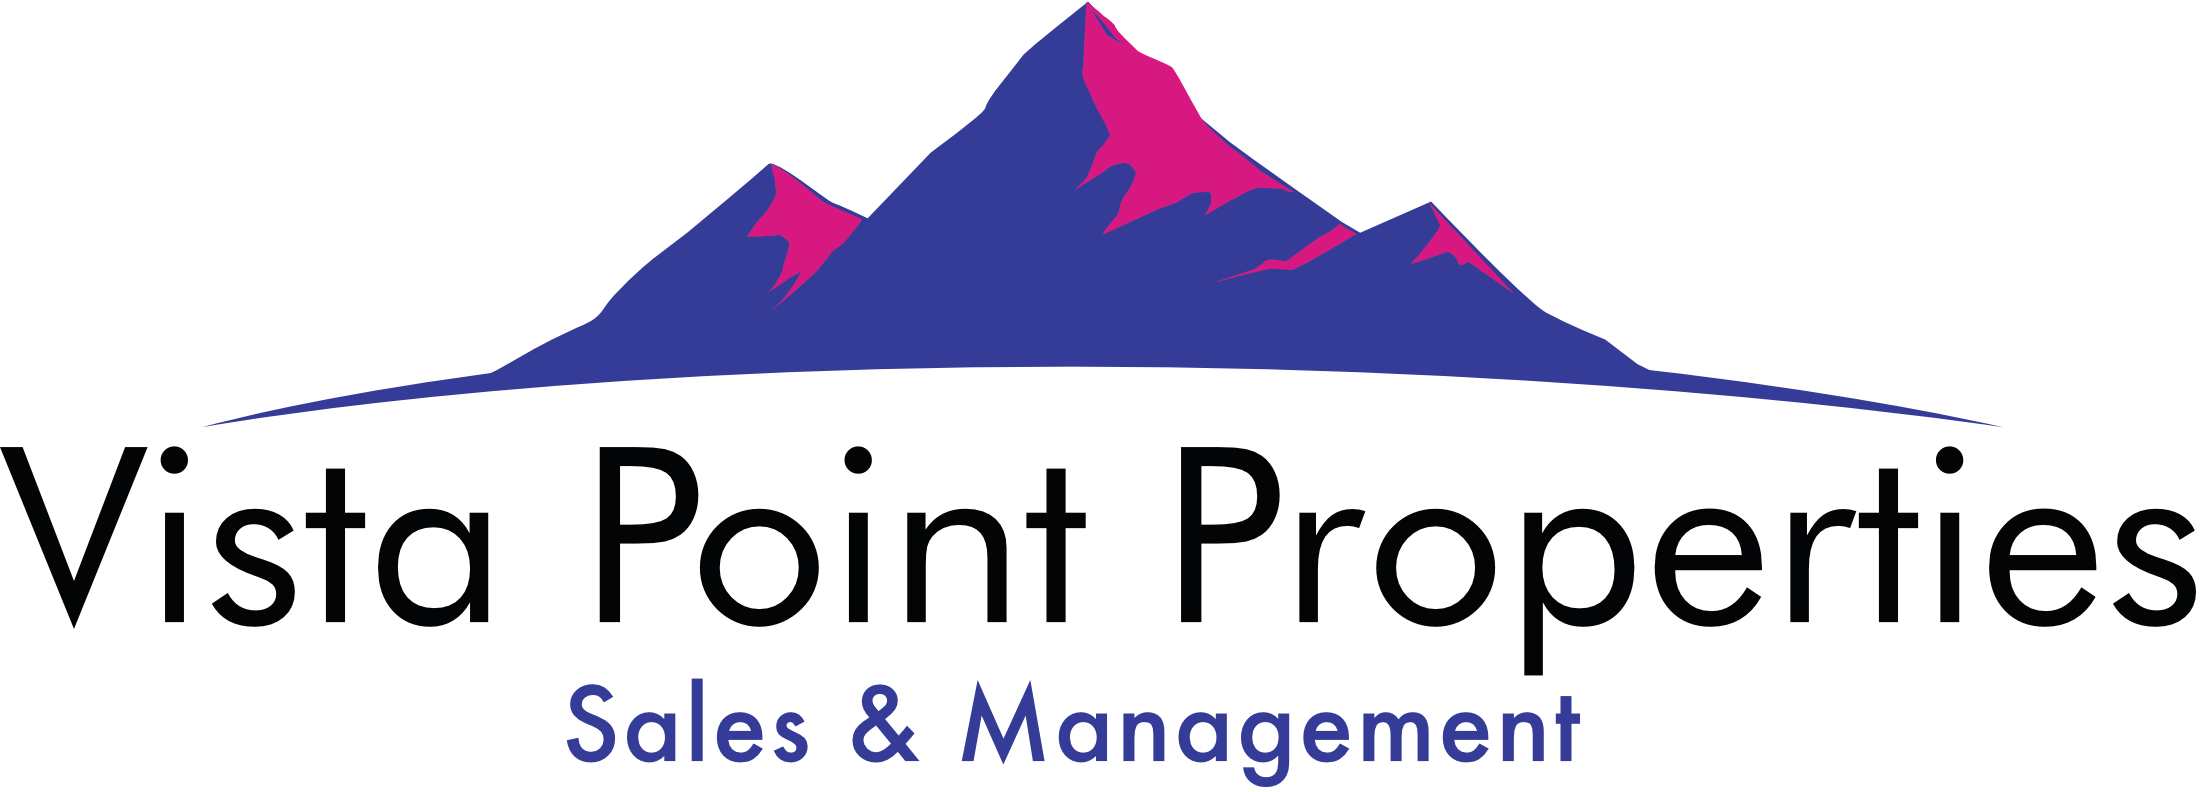 Vista Point Properties |   Communities